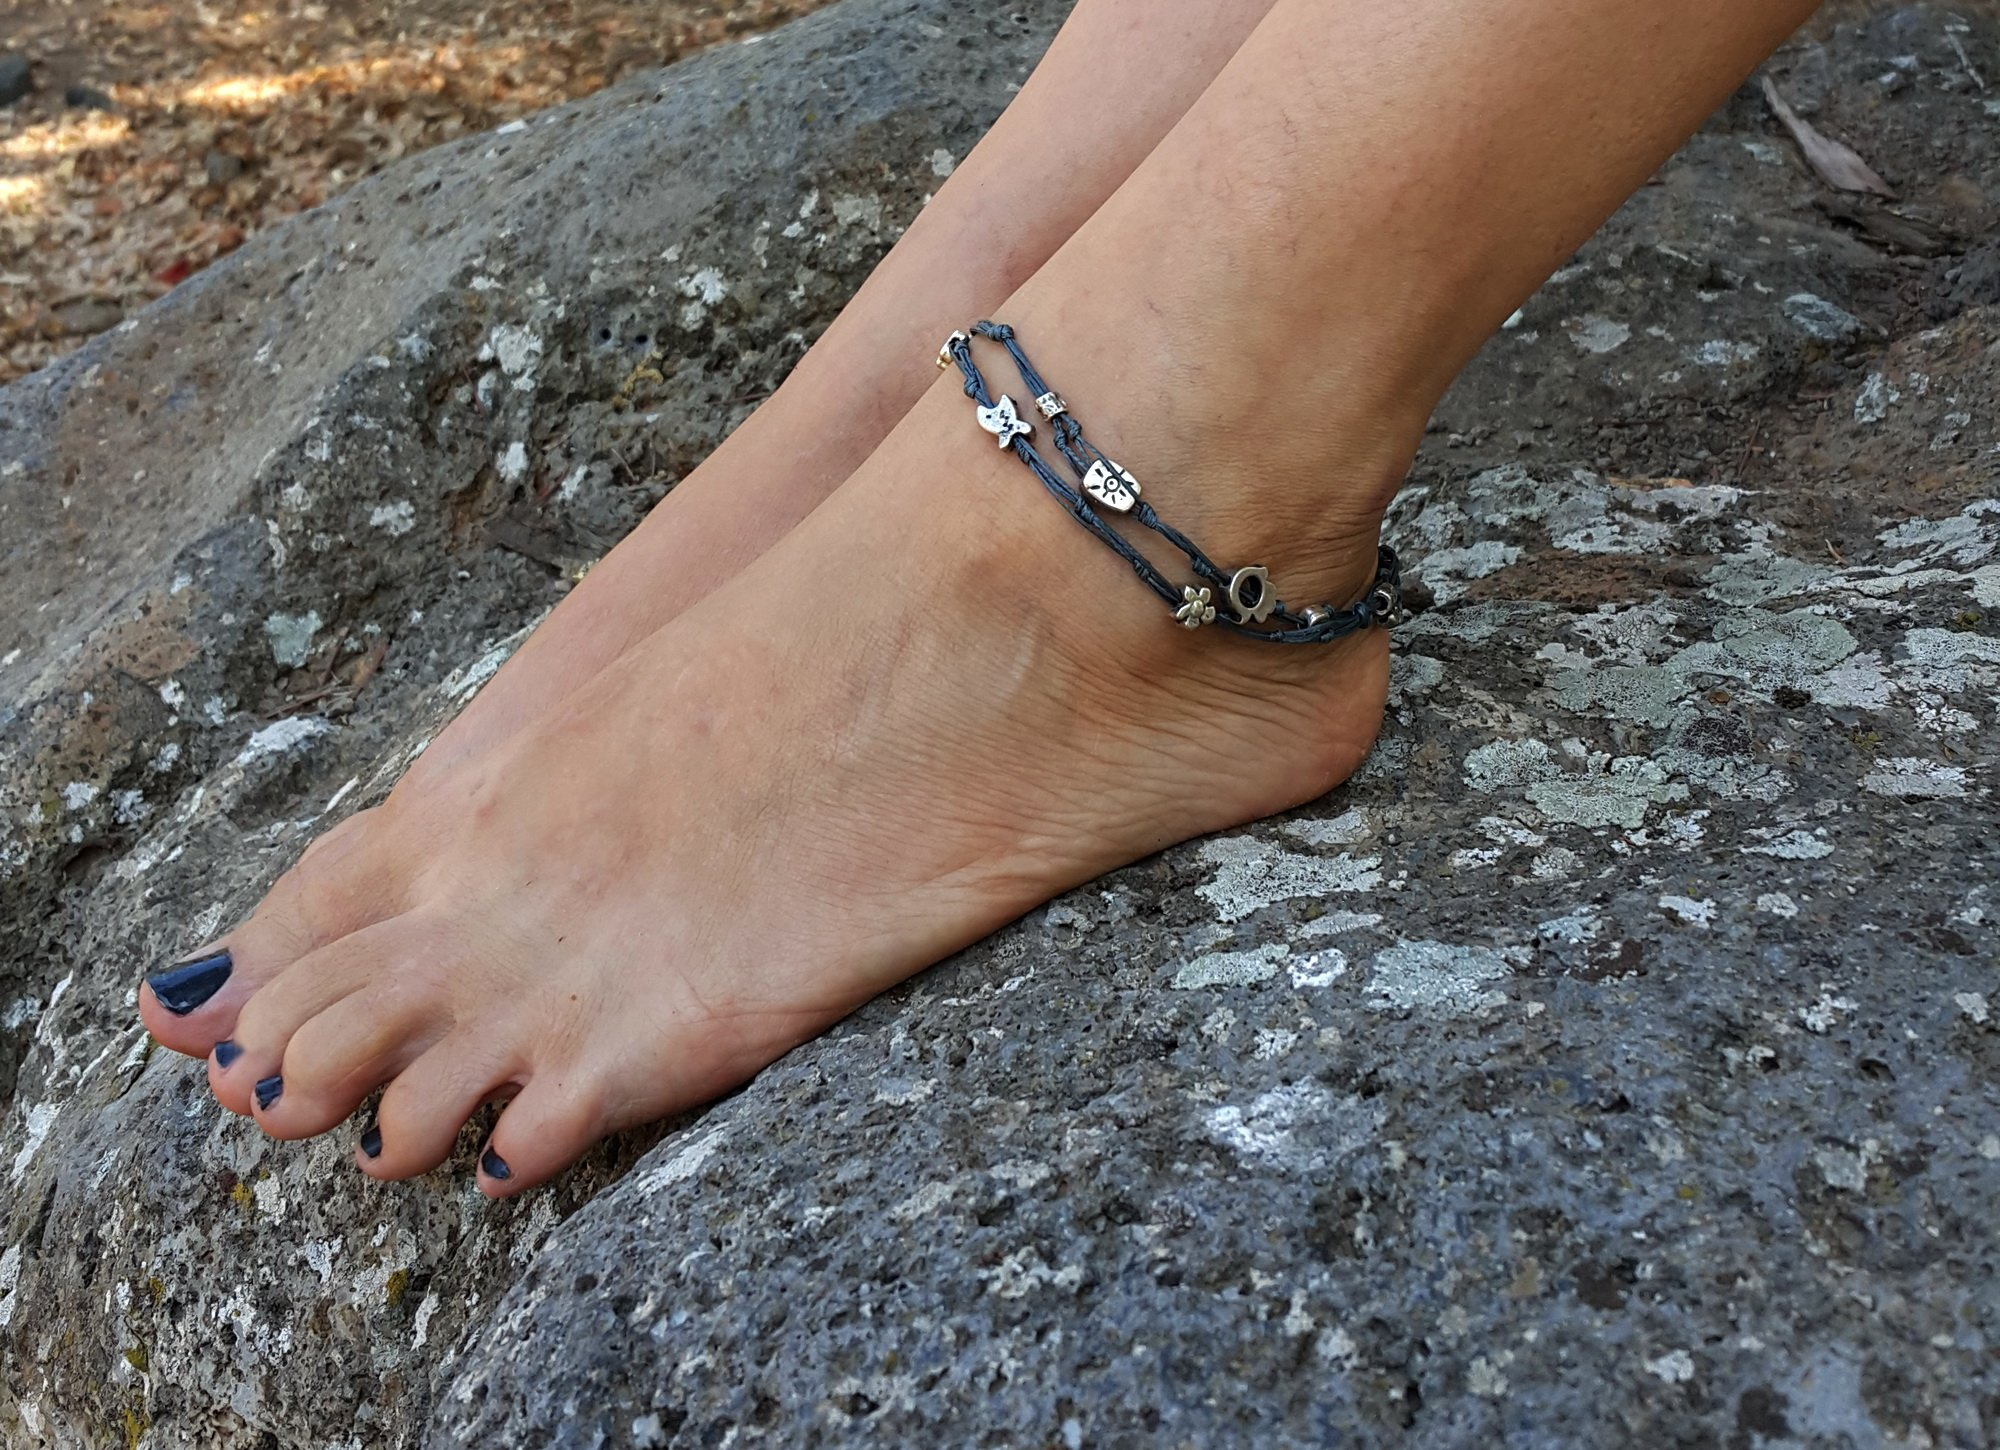 10.5 Inch Women's Anklet - Black Double Wrap Silver Plated Anklet with Hamsa Hand & Good Luck Charms